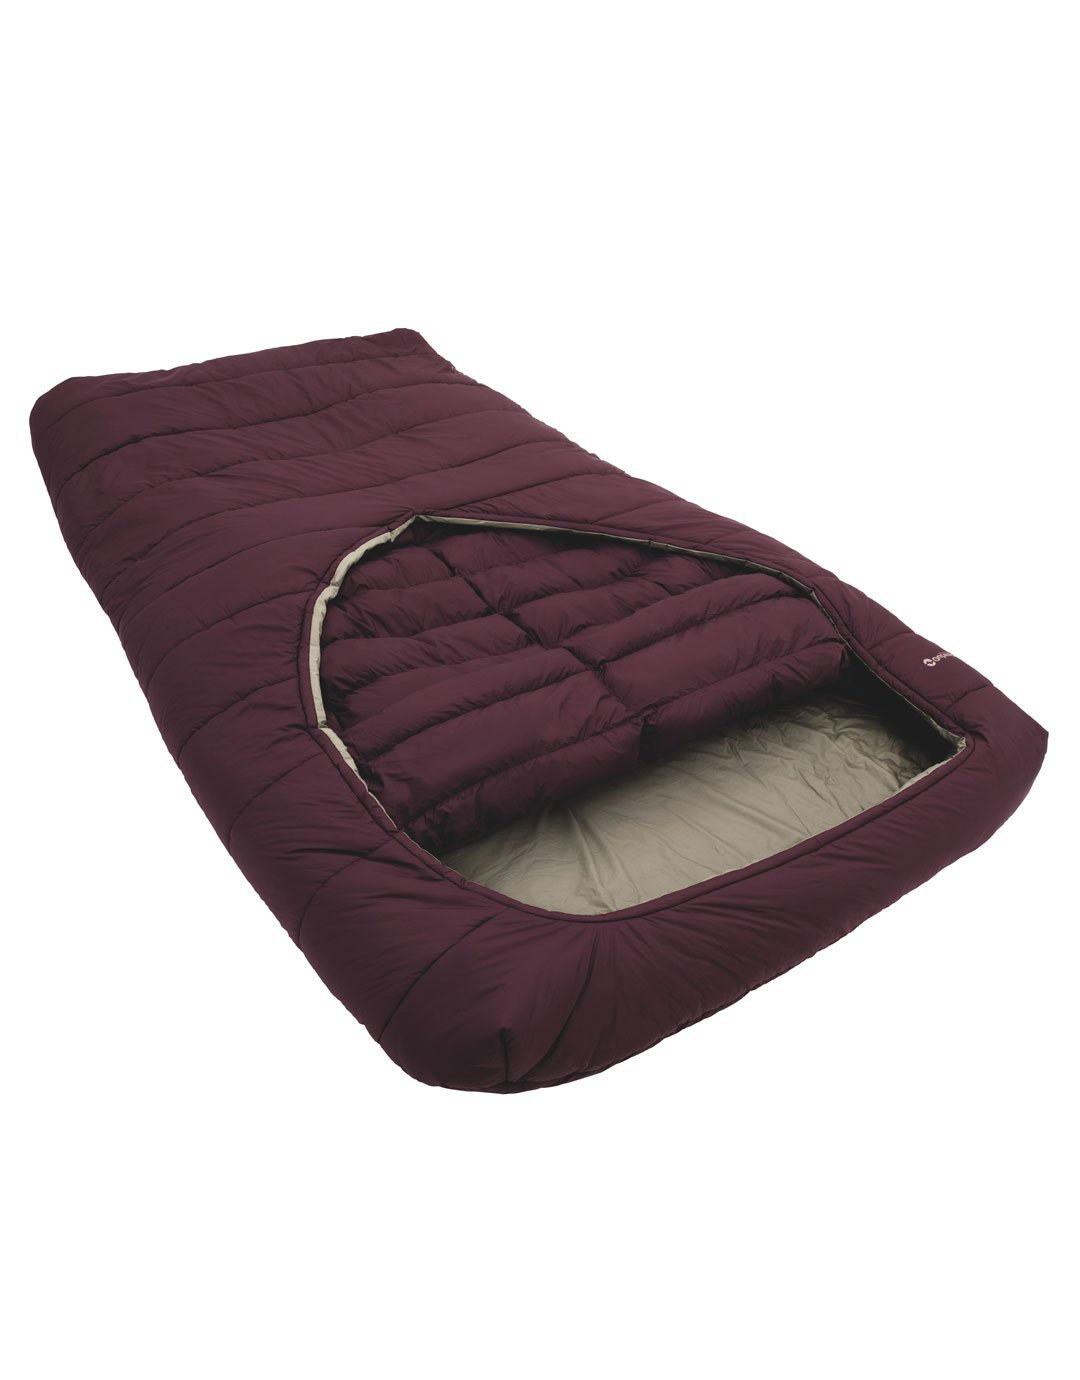 bb0a06e8c71 Outwell Conqueror Double camp sleeping bag red 2016 mummy sleeping bag   Amazon.co.uk  Sports   Outdoors